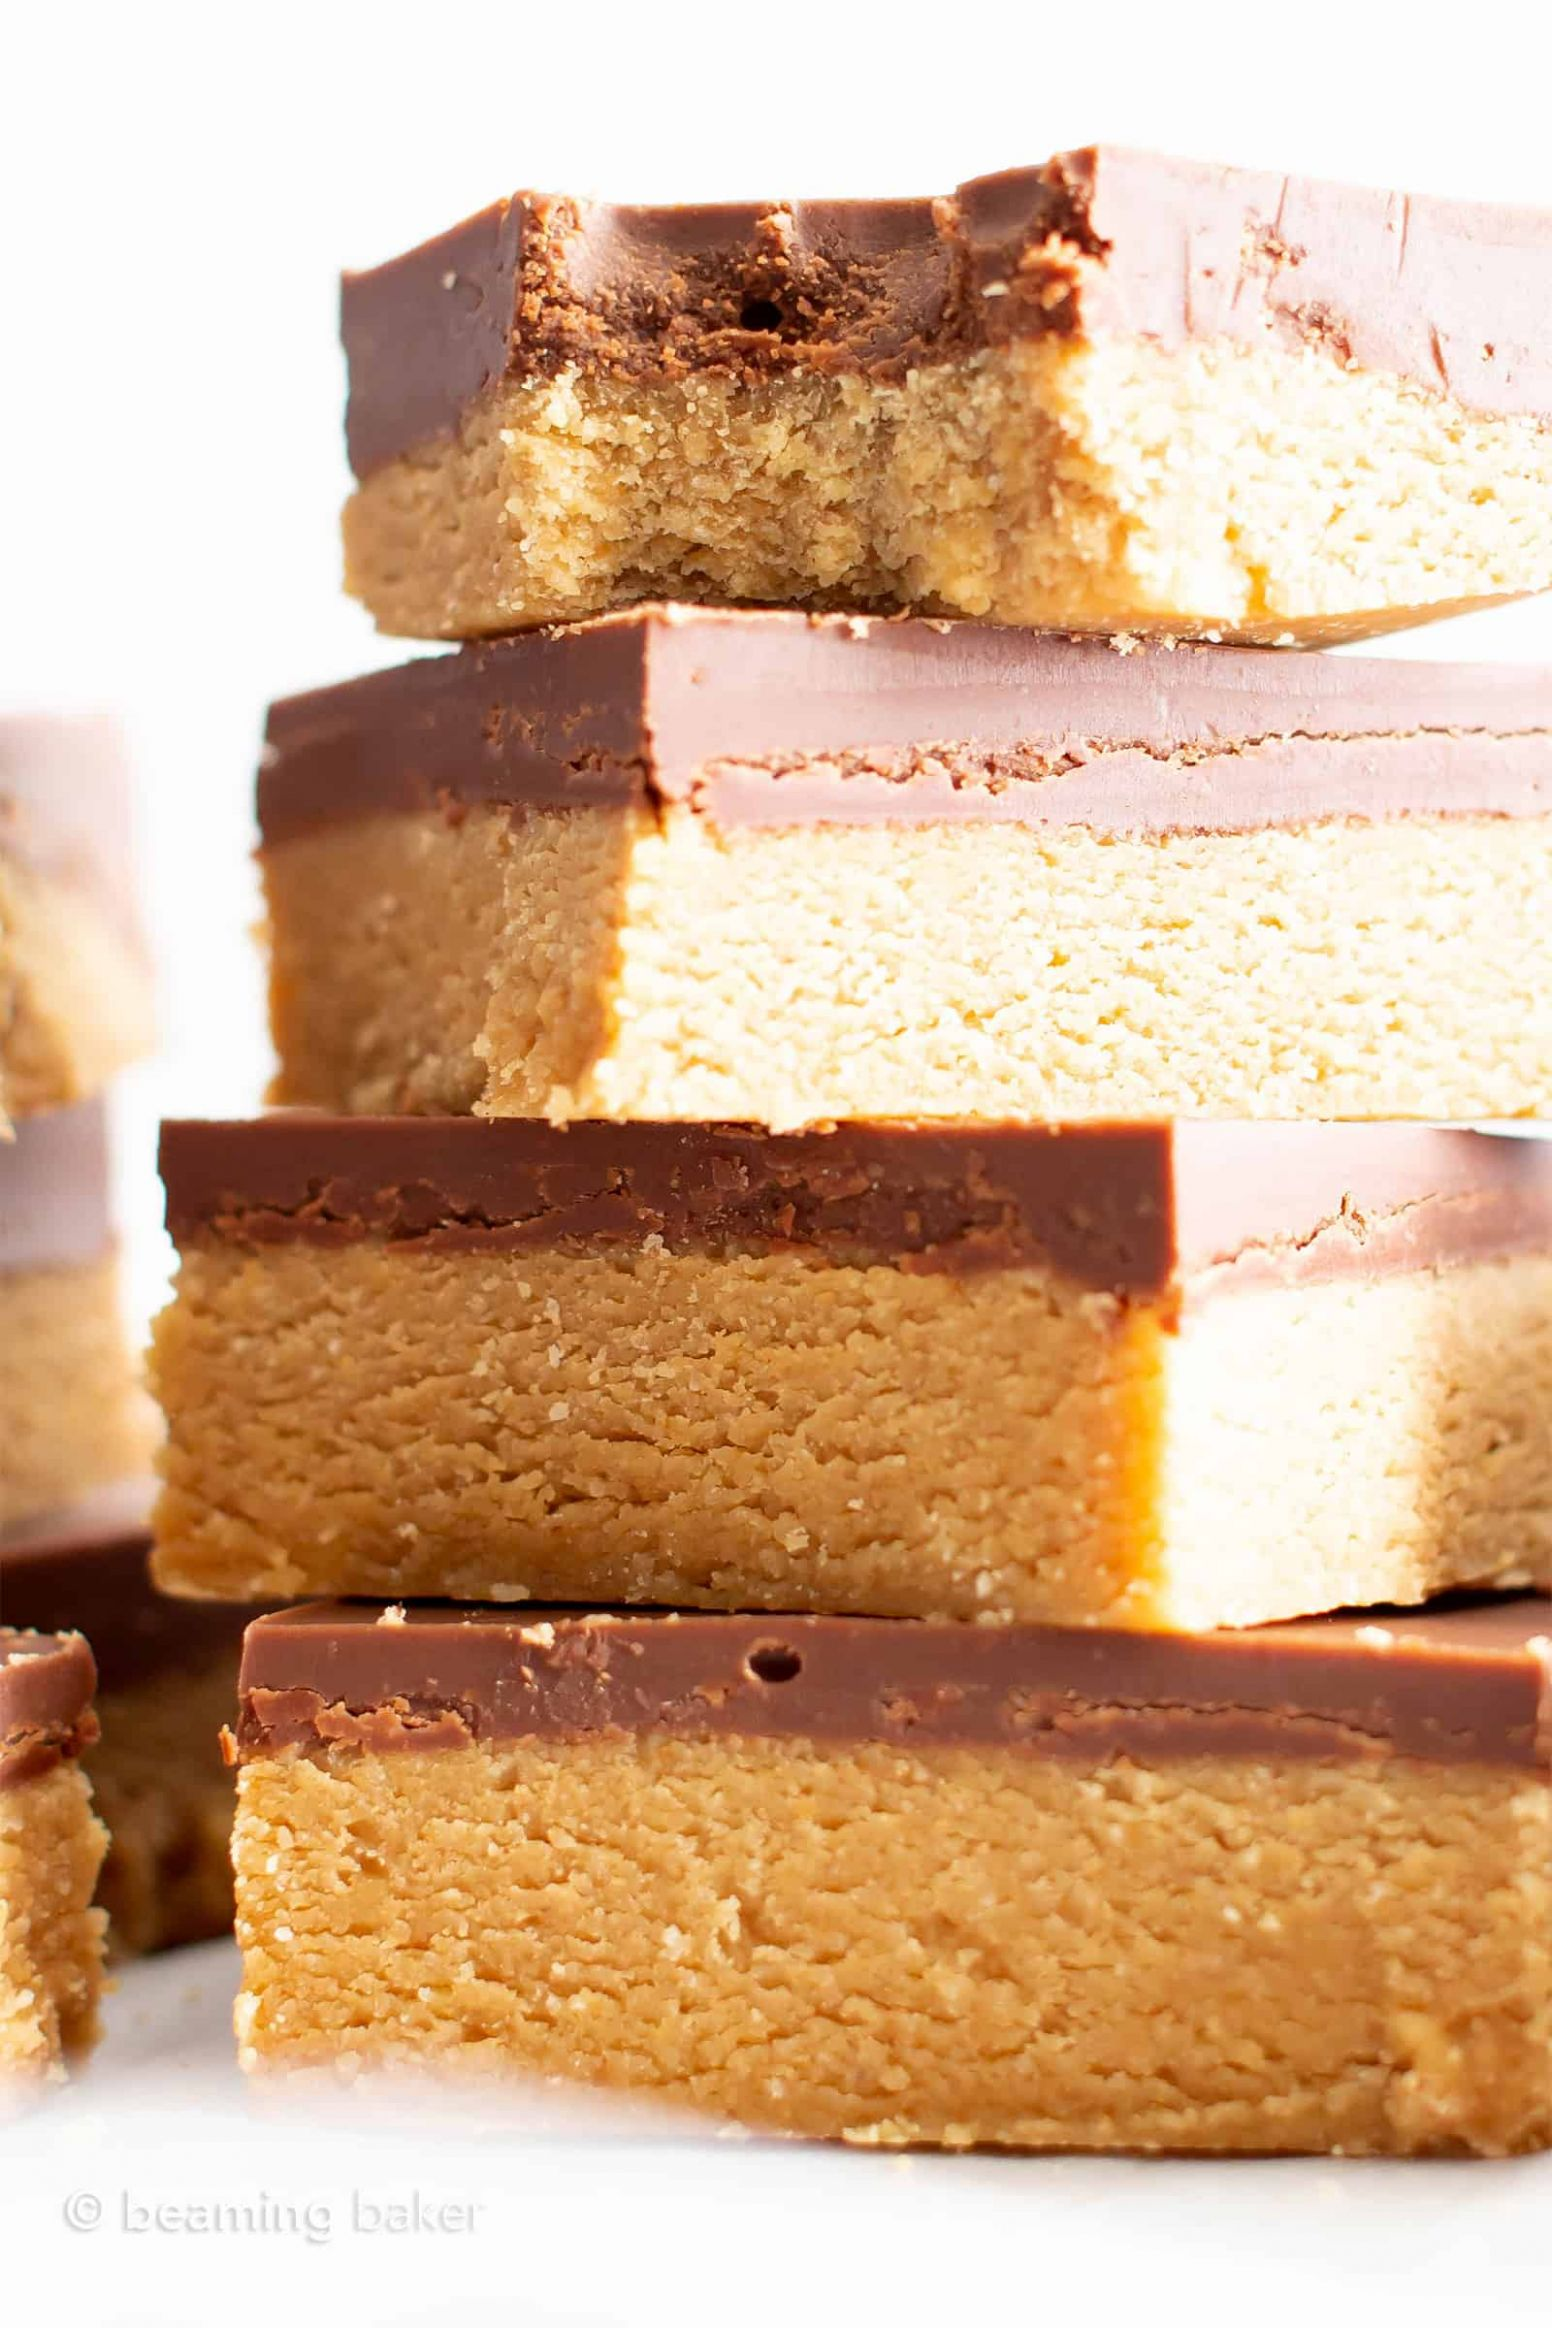 12 Ingredient Easy Vegan Chocolate Peanut Butter Bars (Gluten Free, Healthy,  Dairy-Free)